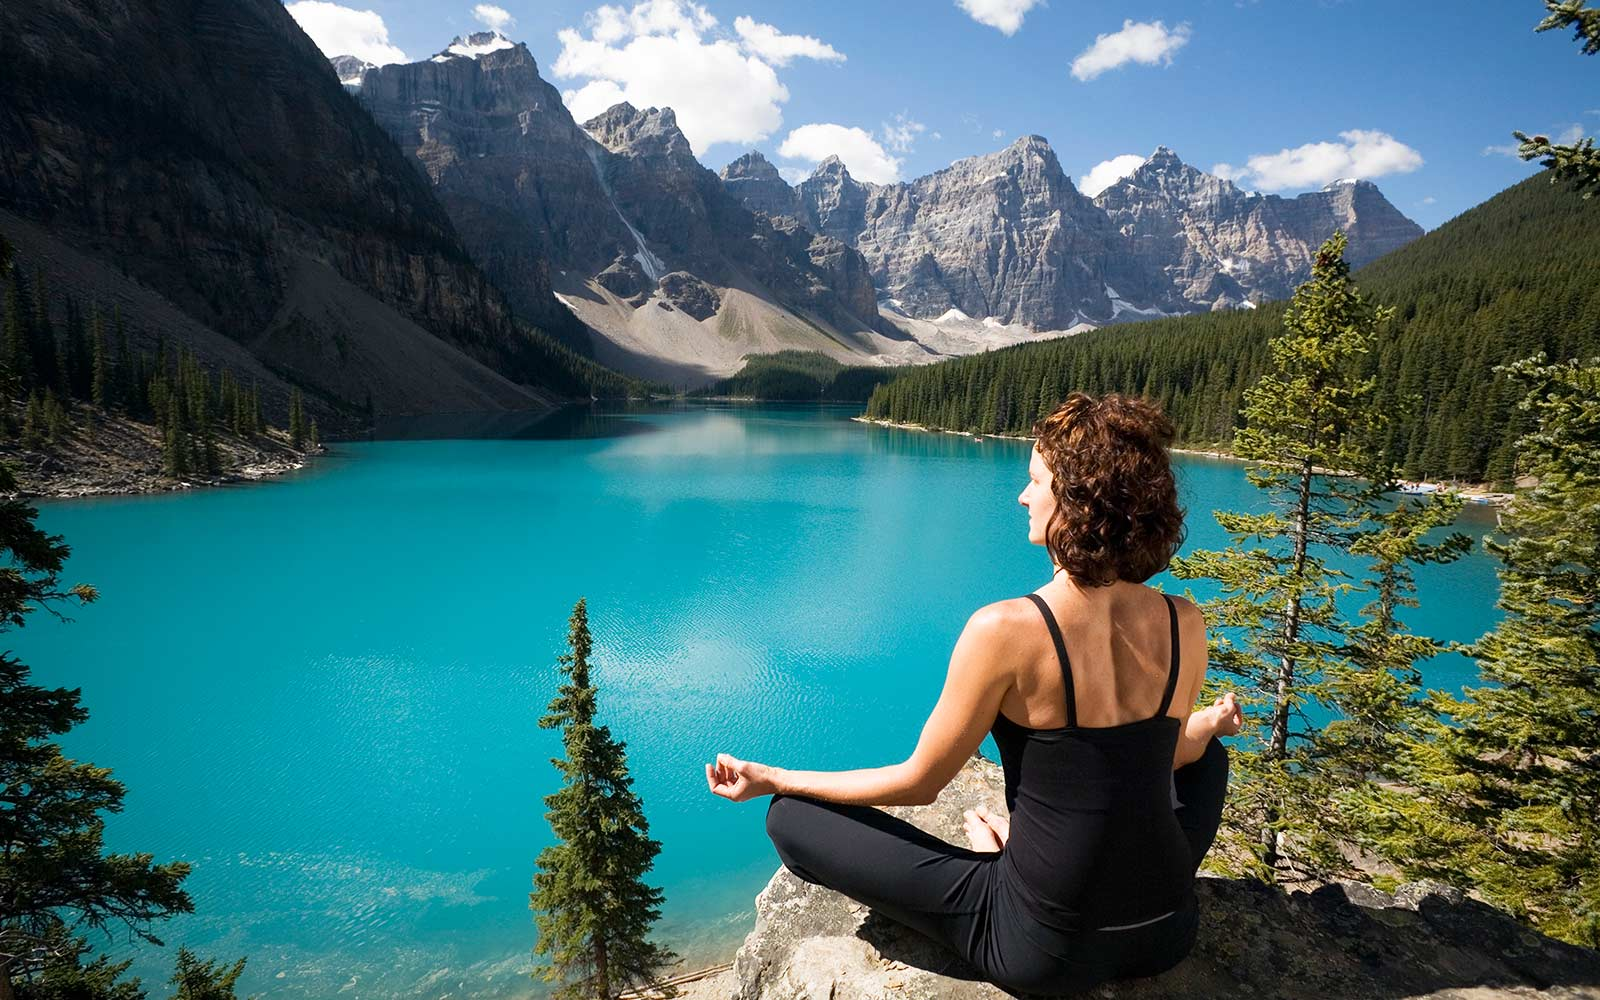 Moraine Lake is a glacially fed lake in Banff National Park, Village of Lake Louise, Alberta, Canada yoga